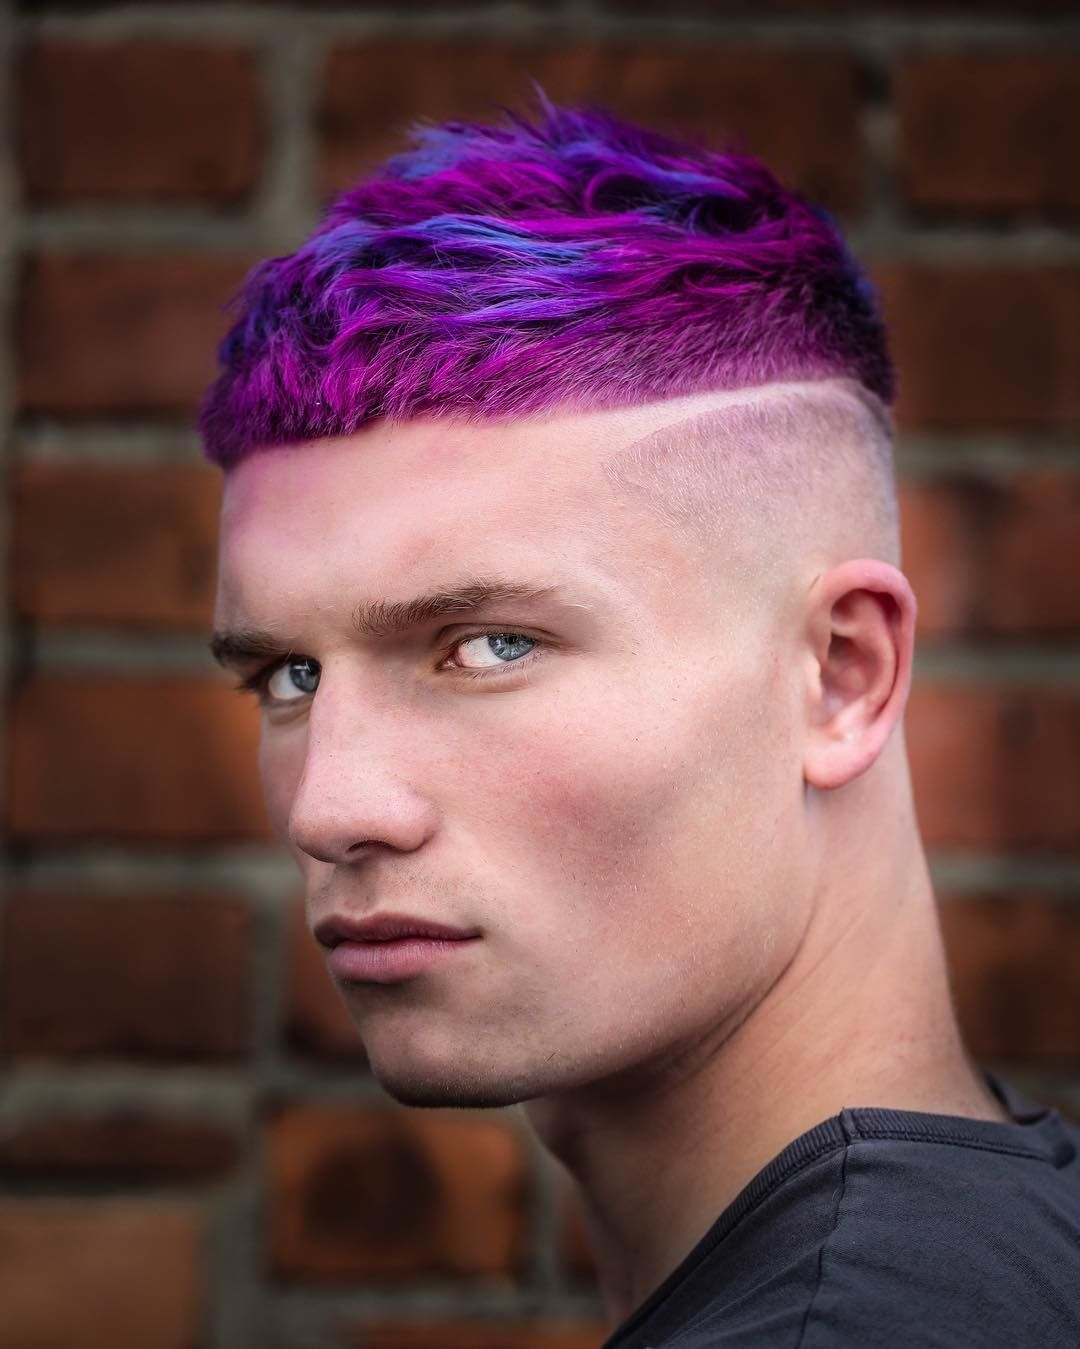 Tom Baxter Hair On Instagram One Of My Favourite Looks I Ve Done With Osmouk Official Judeswailes5 Coiffure Homme Coupe Cheveux Homme Coiffures Masculines